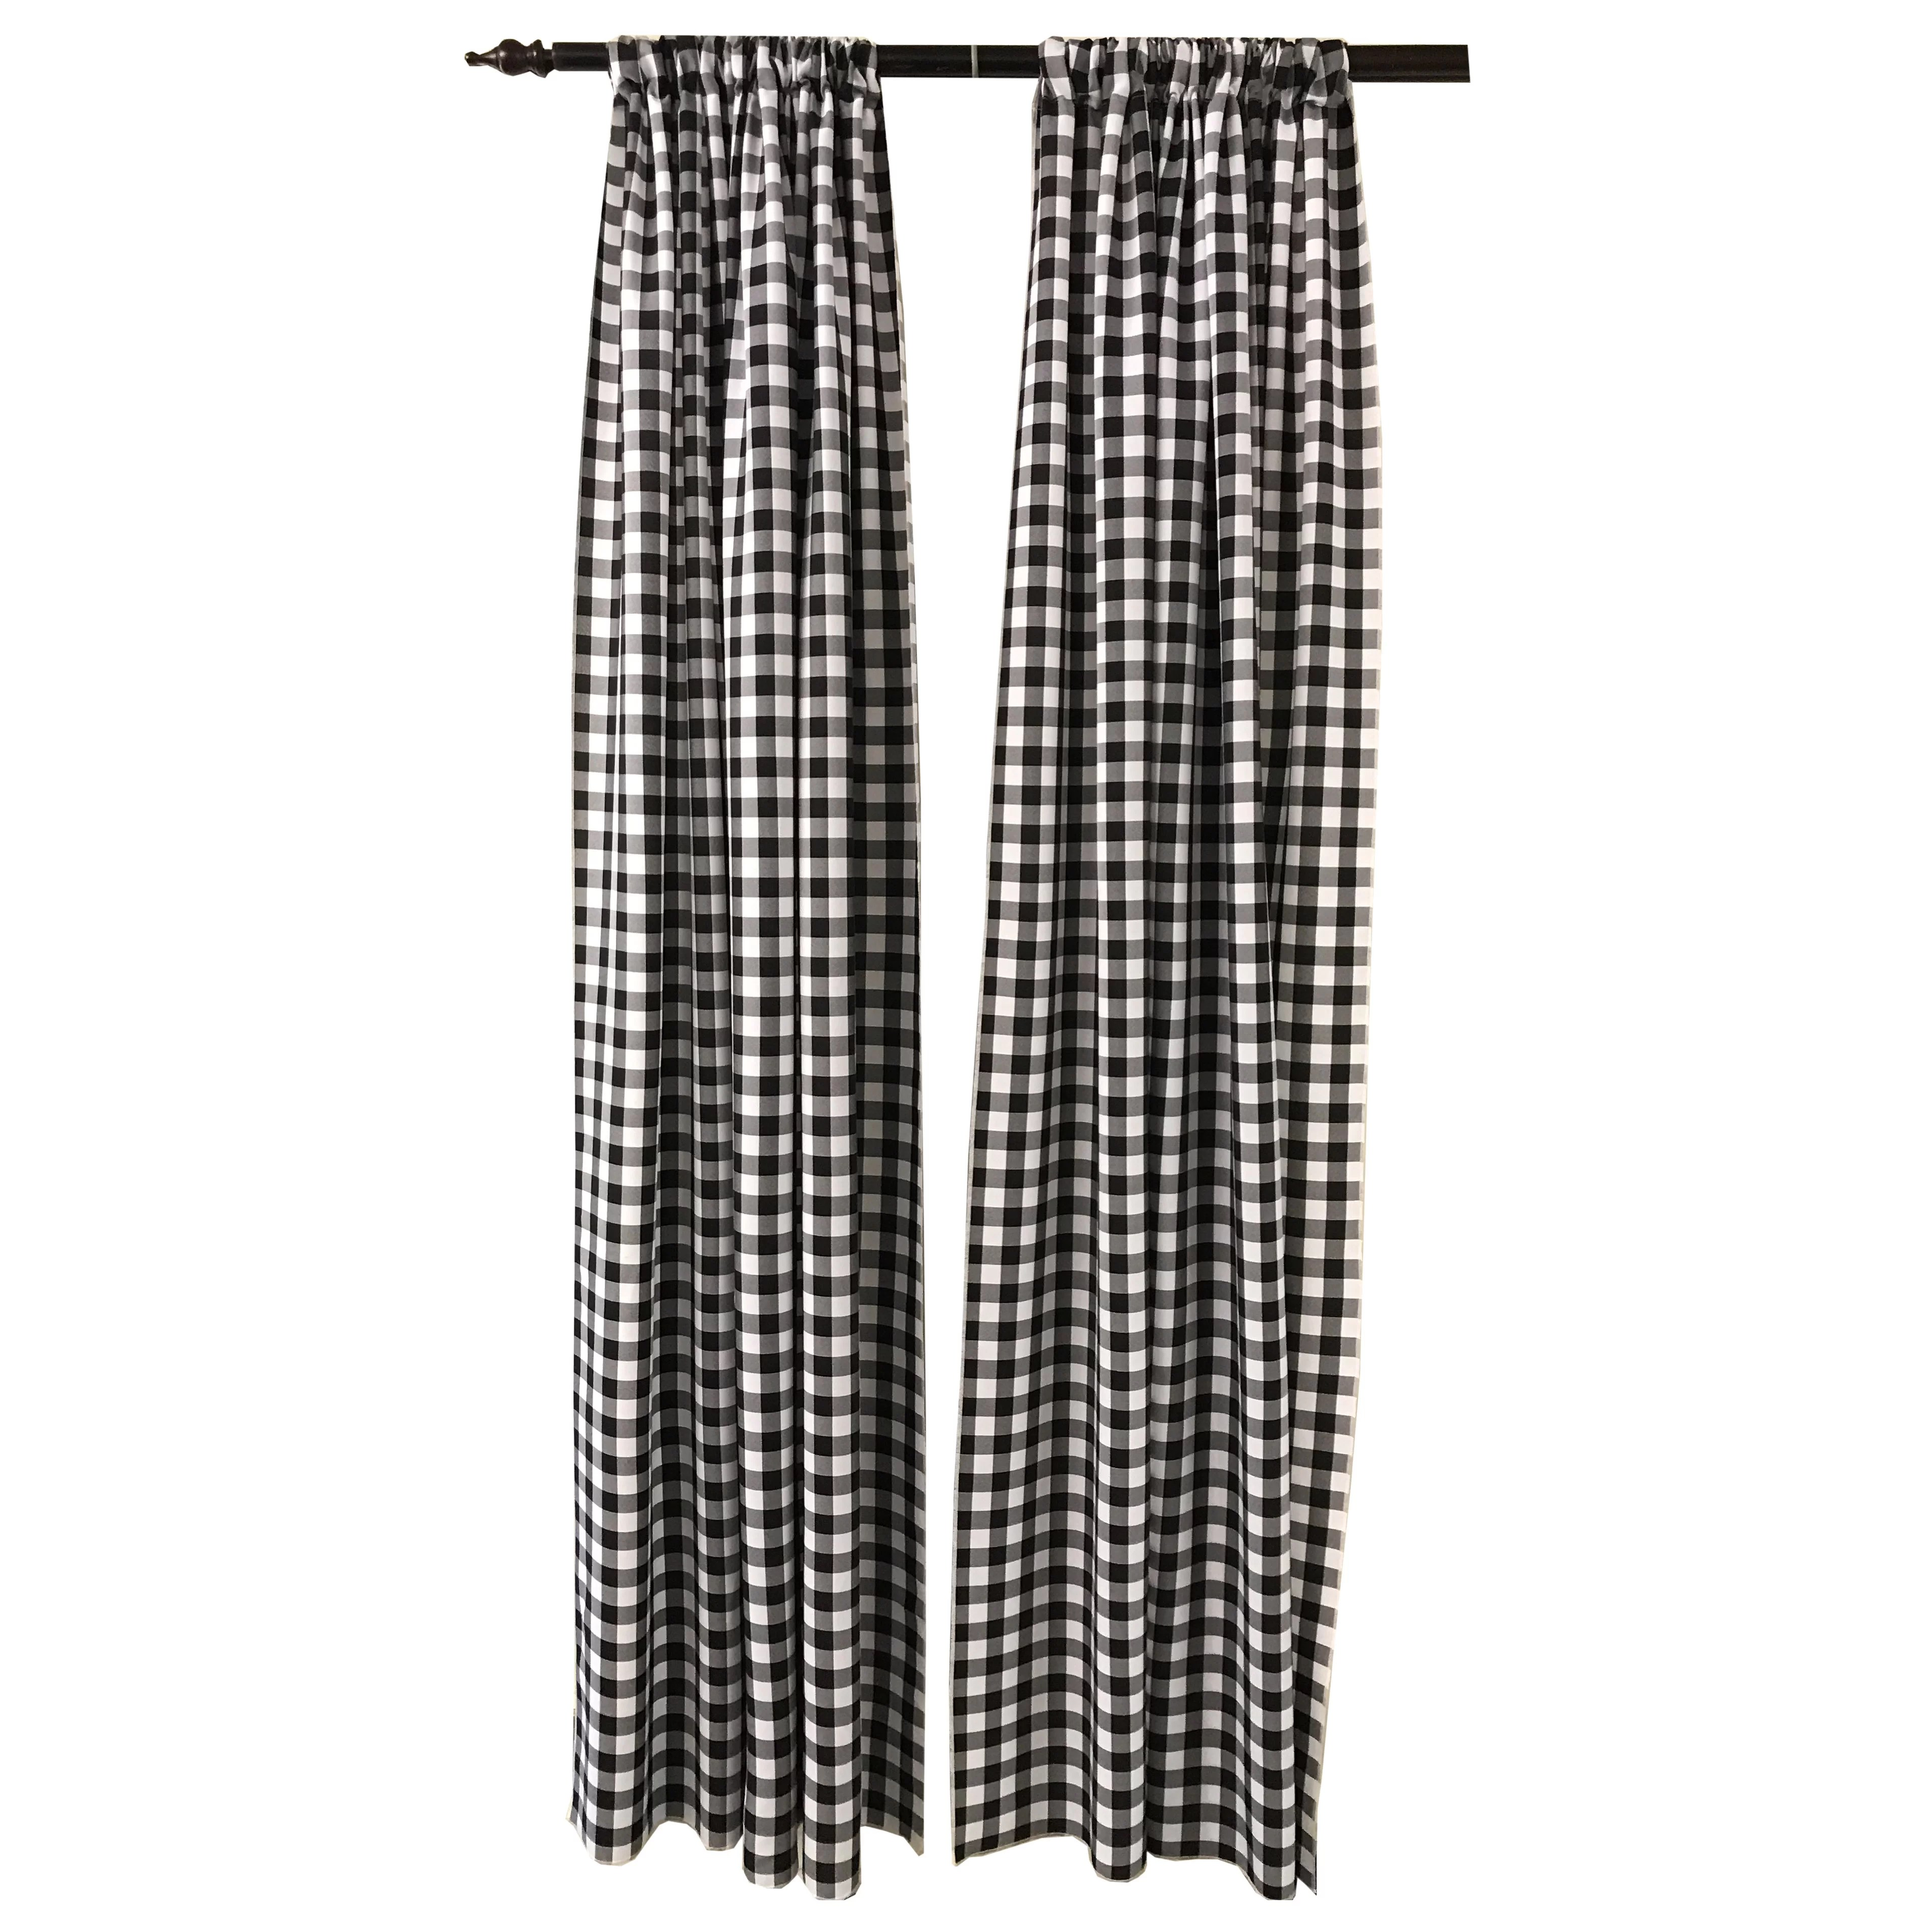 Grey And White Gingham Curtains Huggard Backdrop Gingham Room Darkening Rod Pocket Curtain Panels